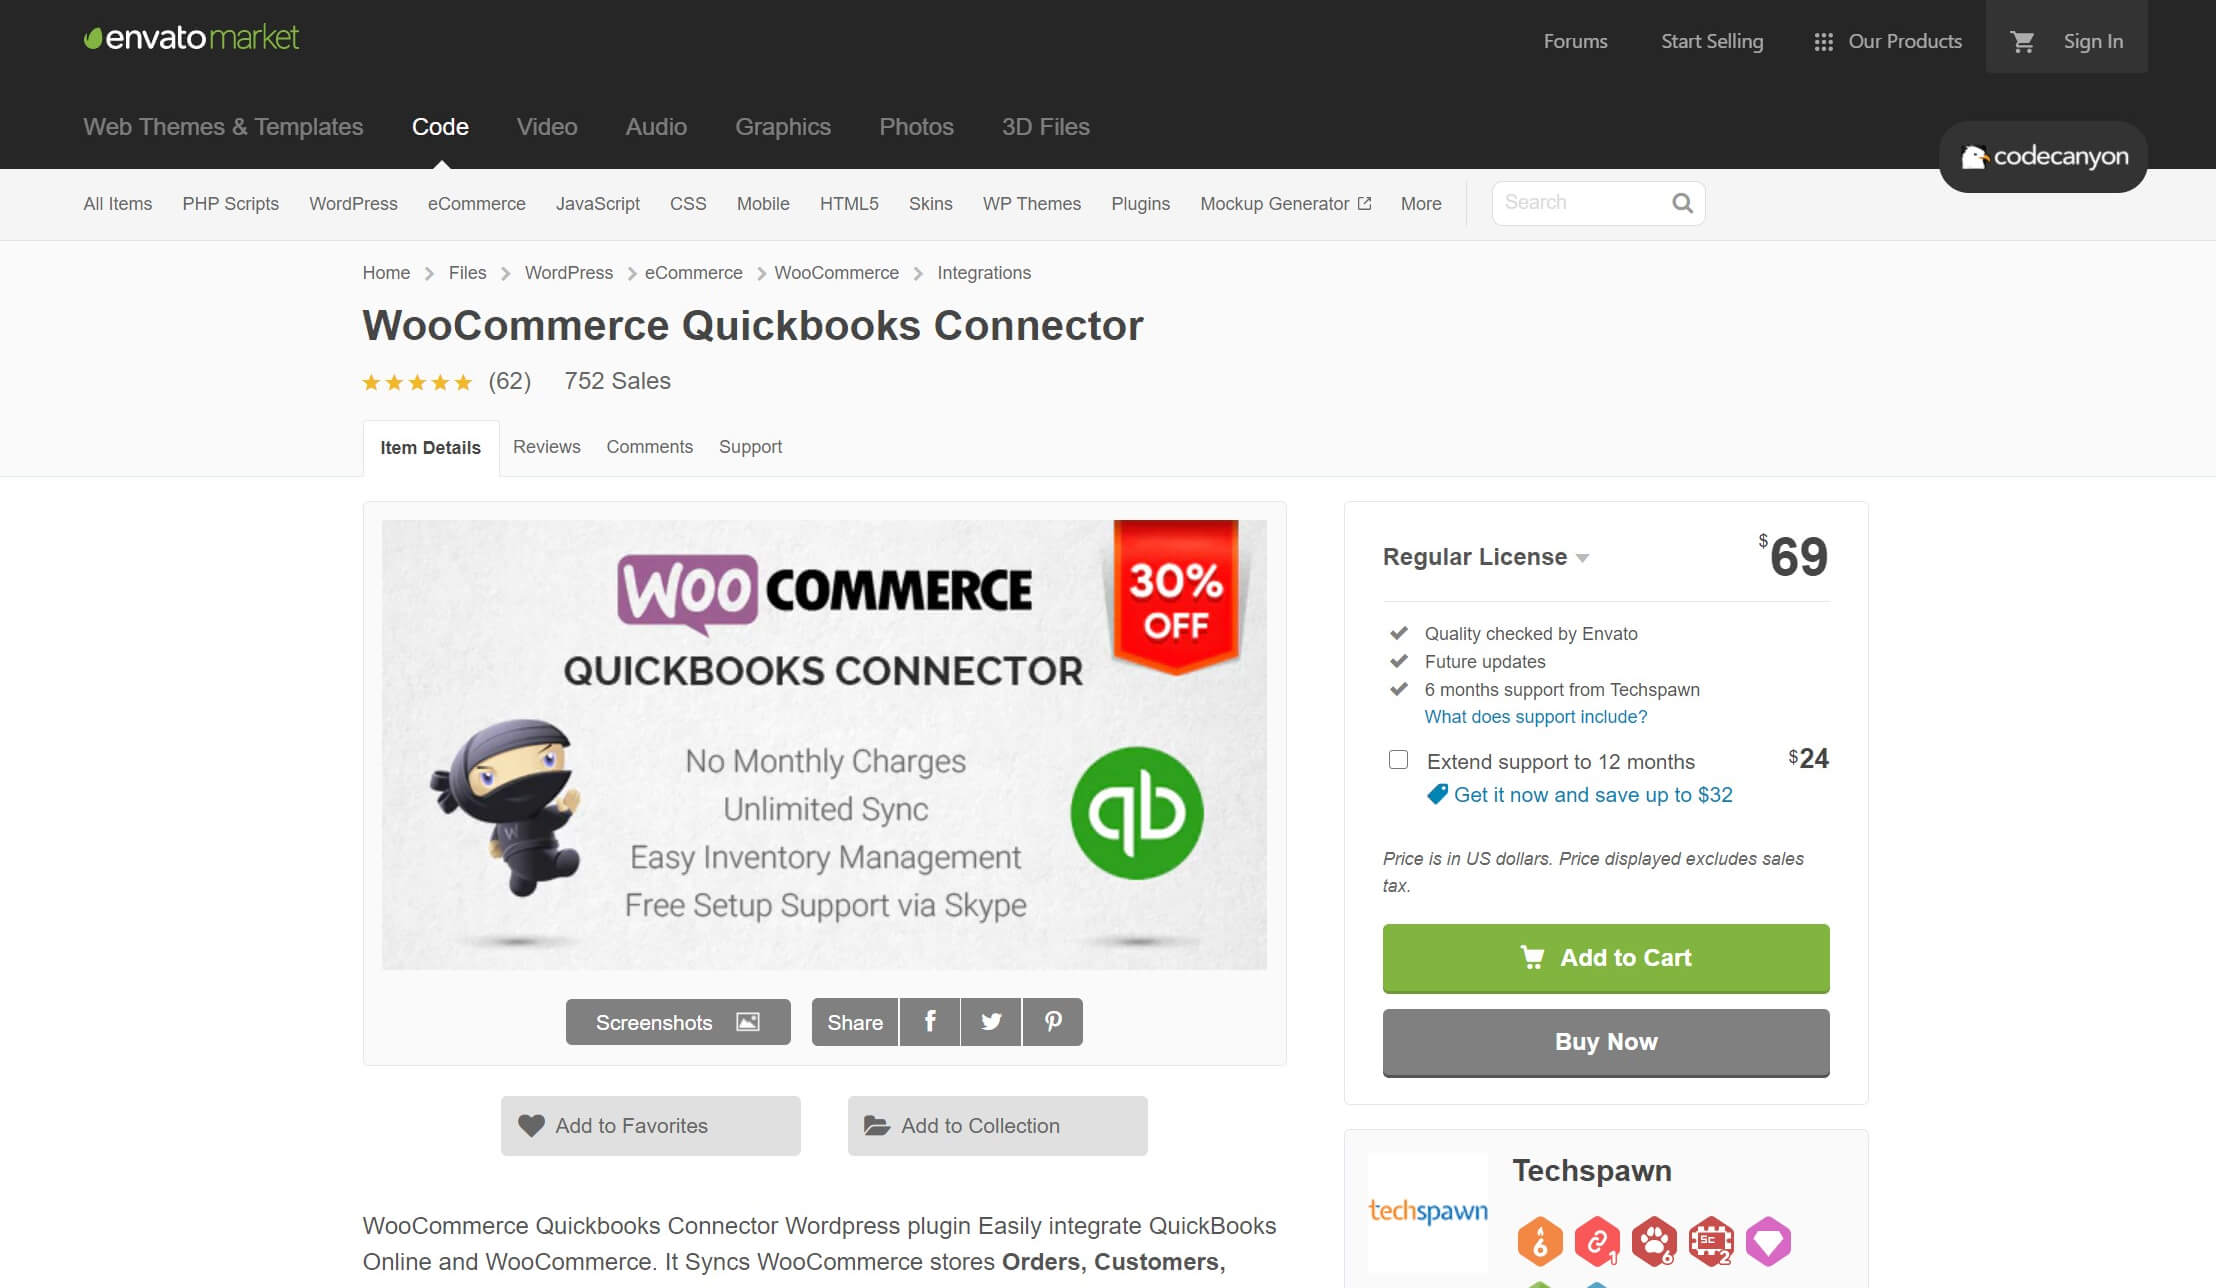 The WooCommerce QuickBooks Connector plugin.